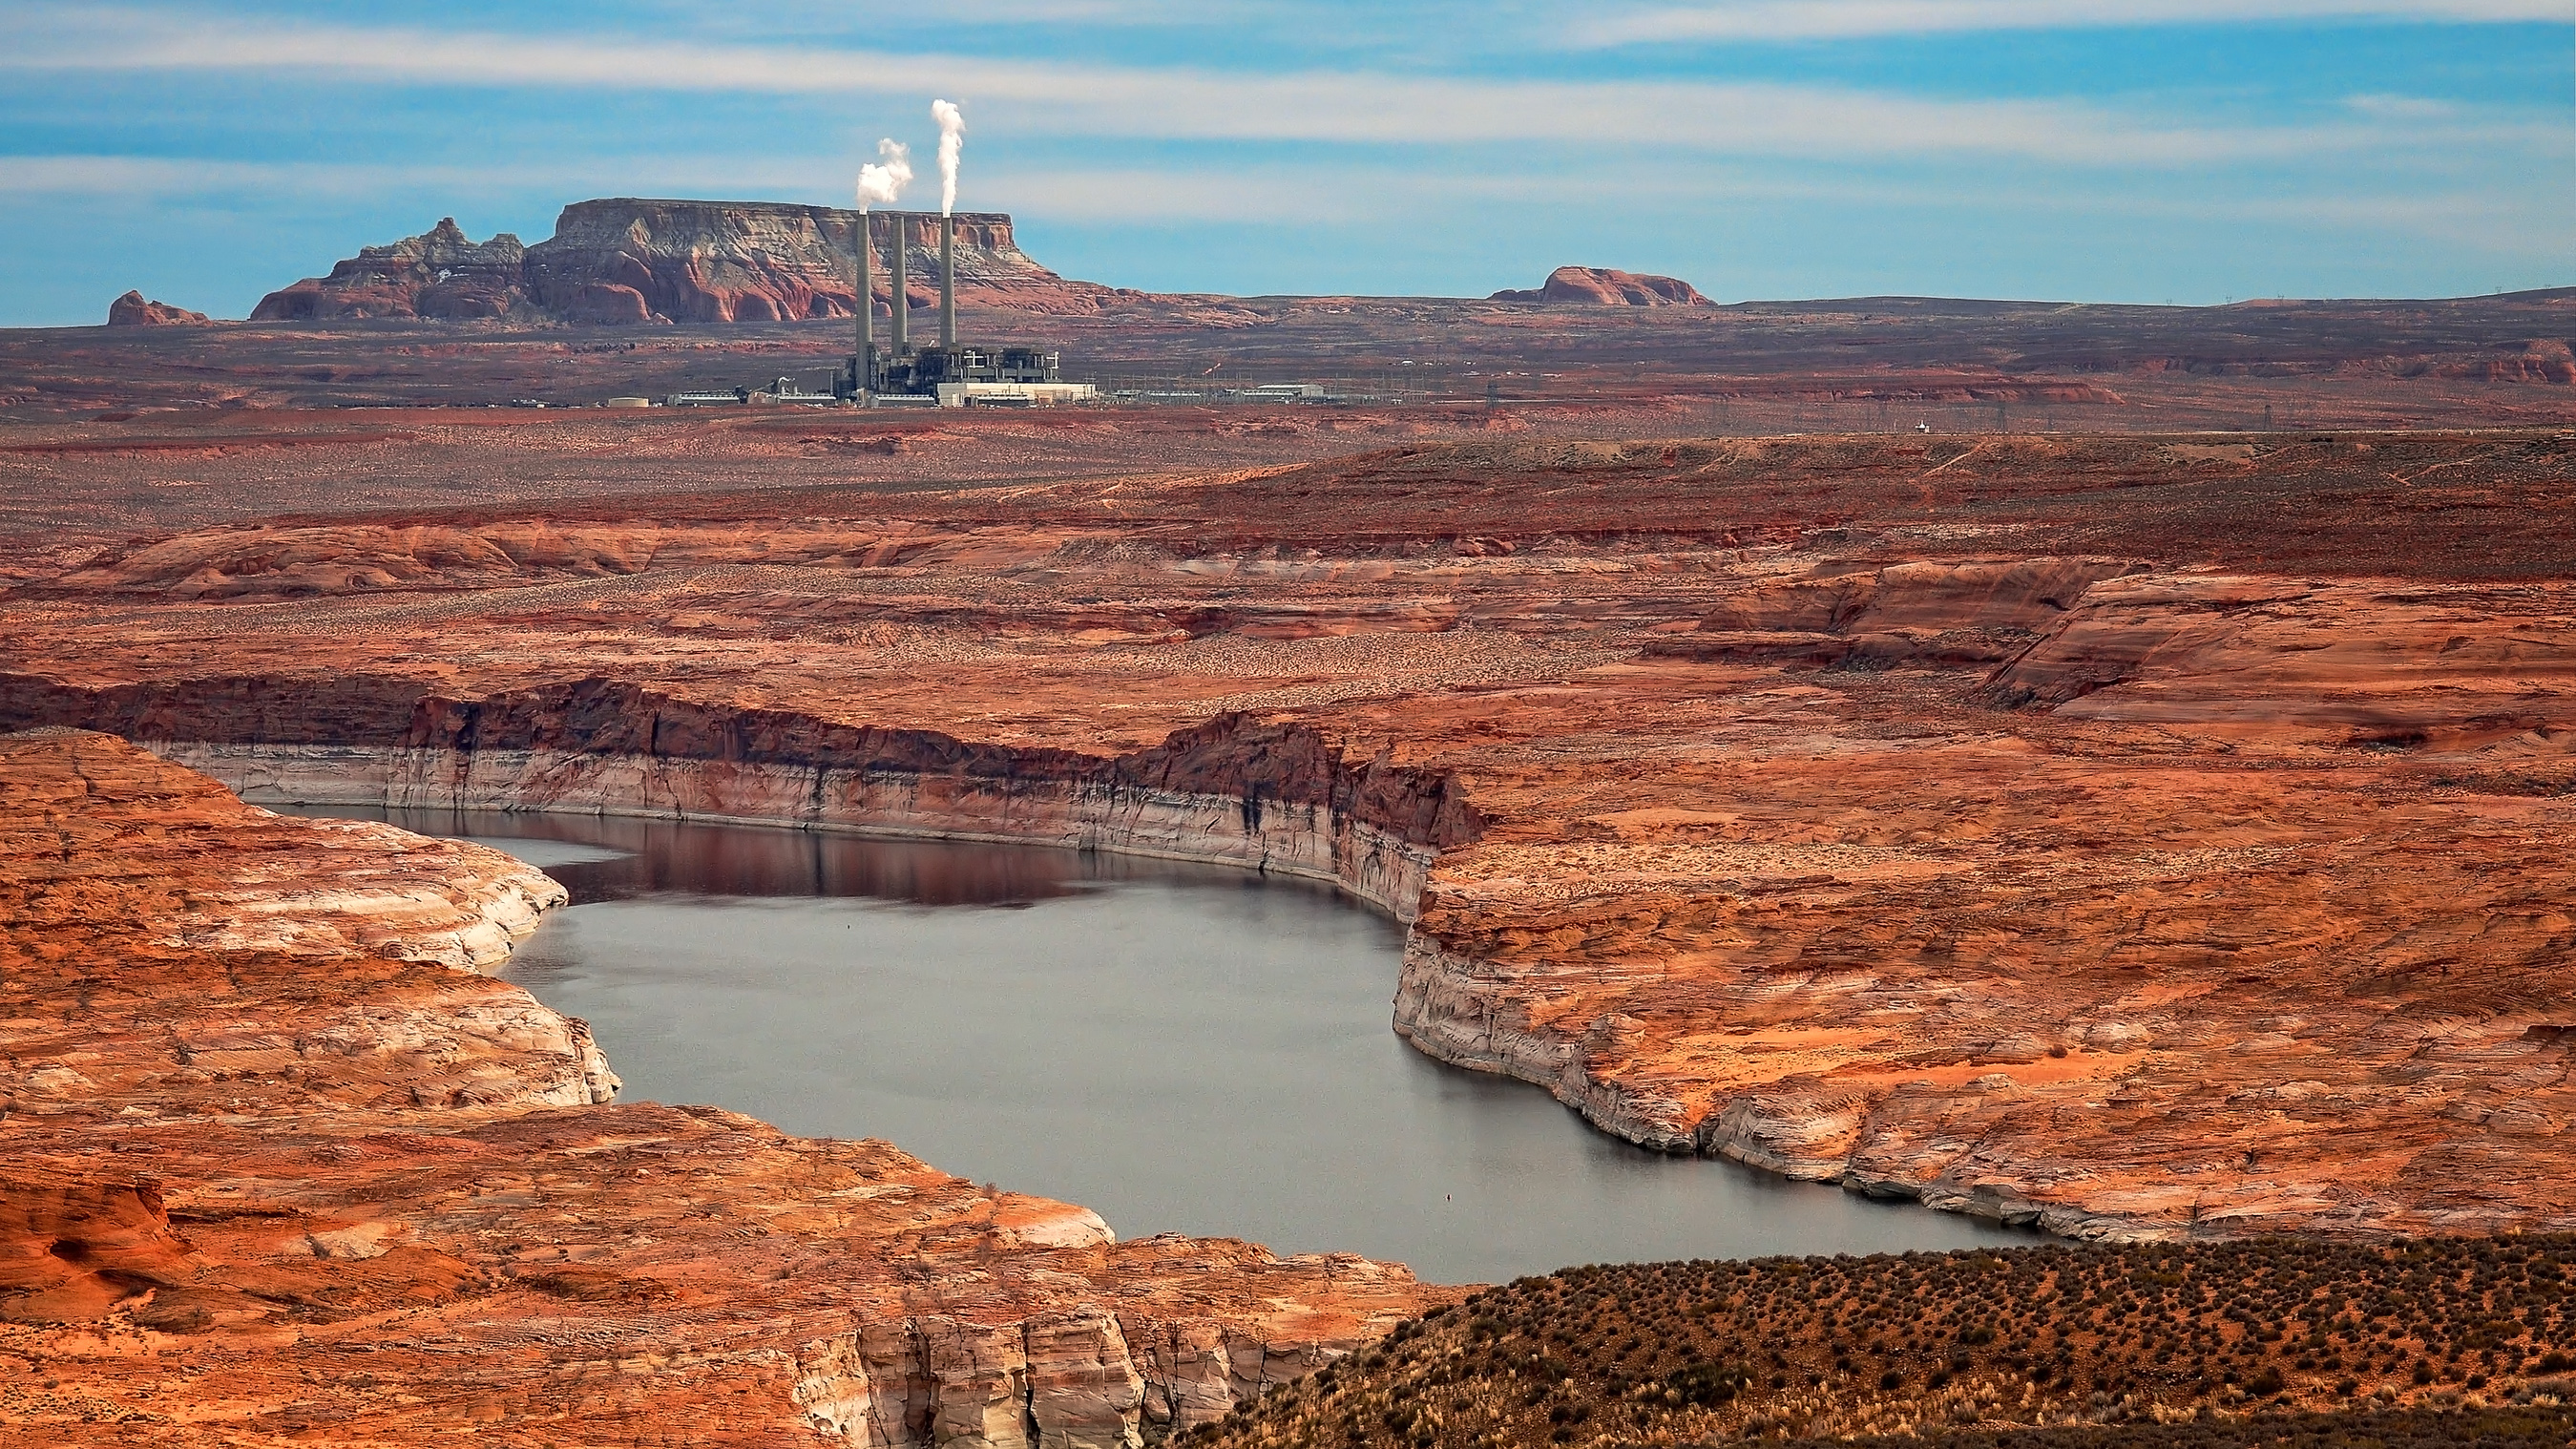 A view of Lake Powell with the Navajo Generating Station in the distance